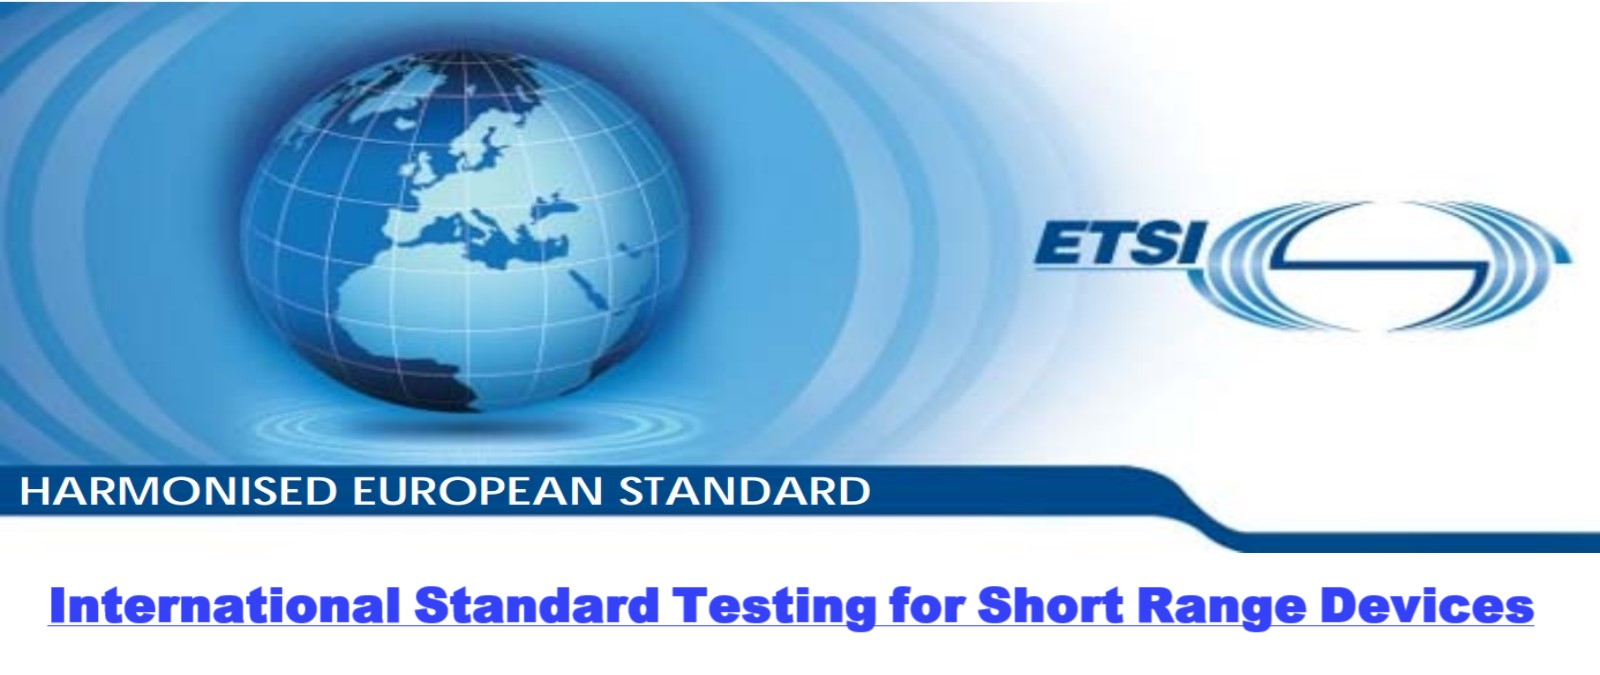 Tests in accordance with international standards